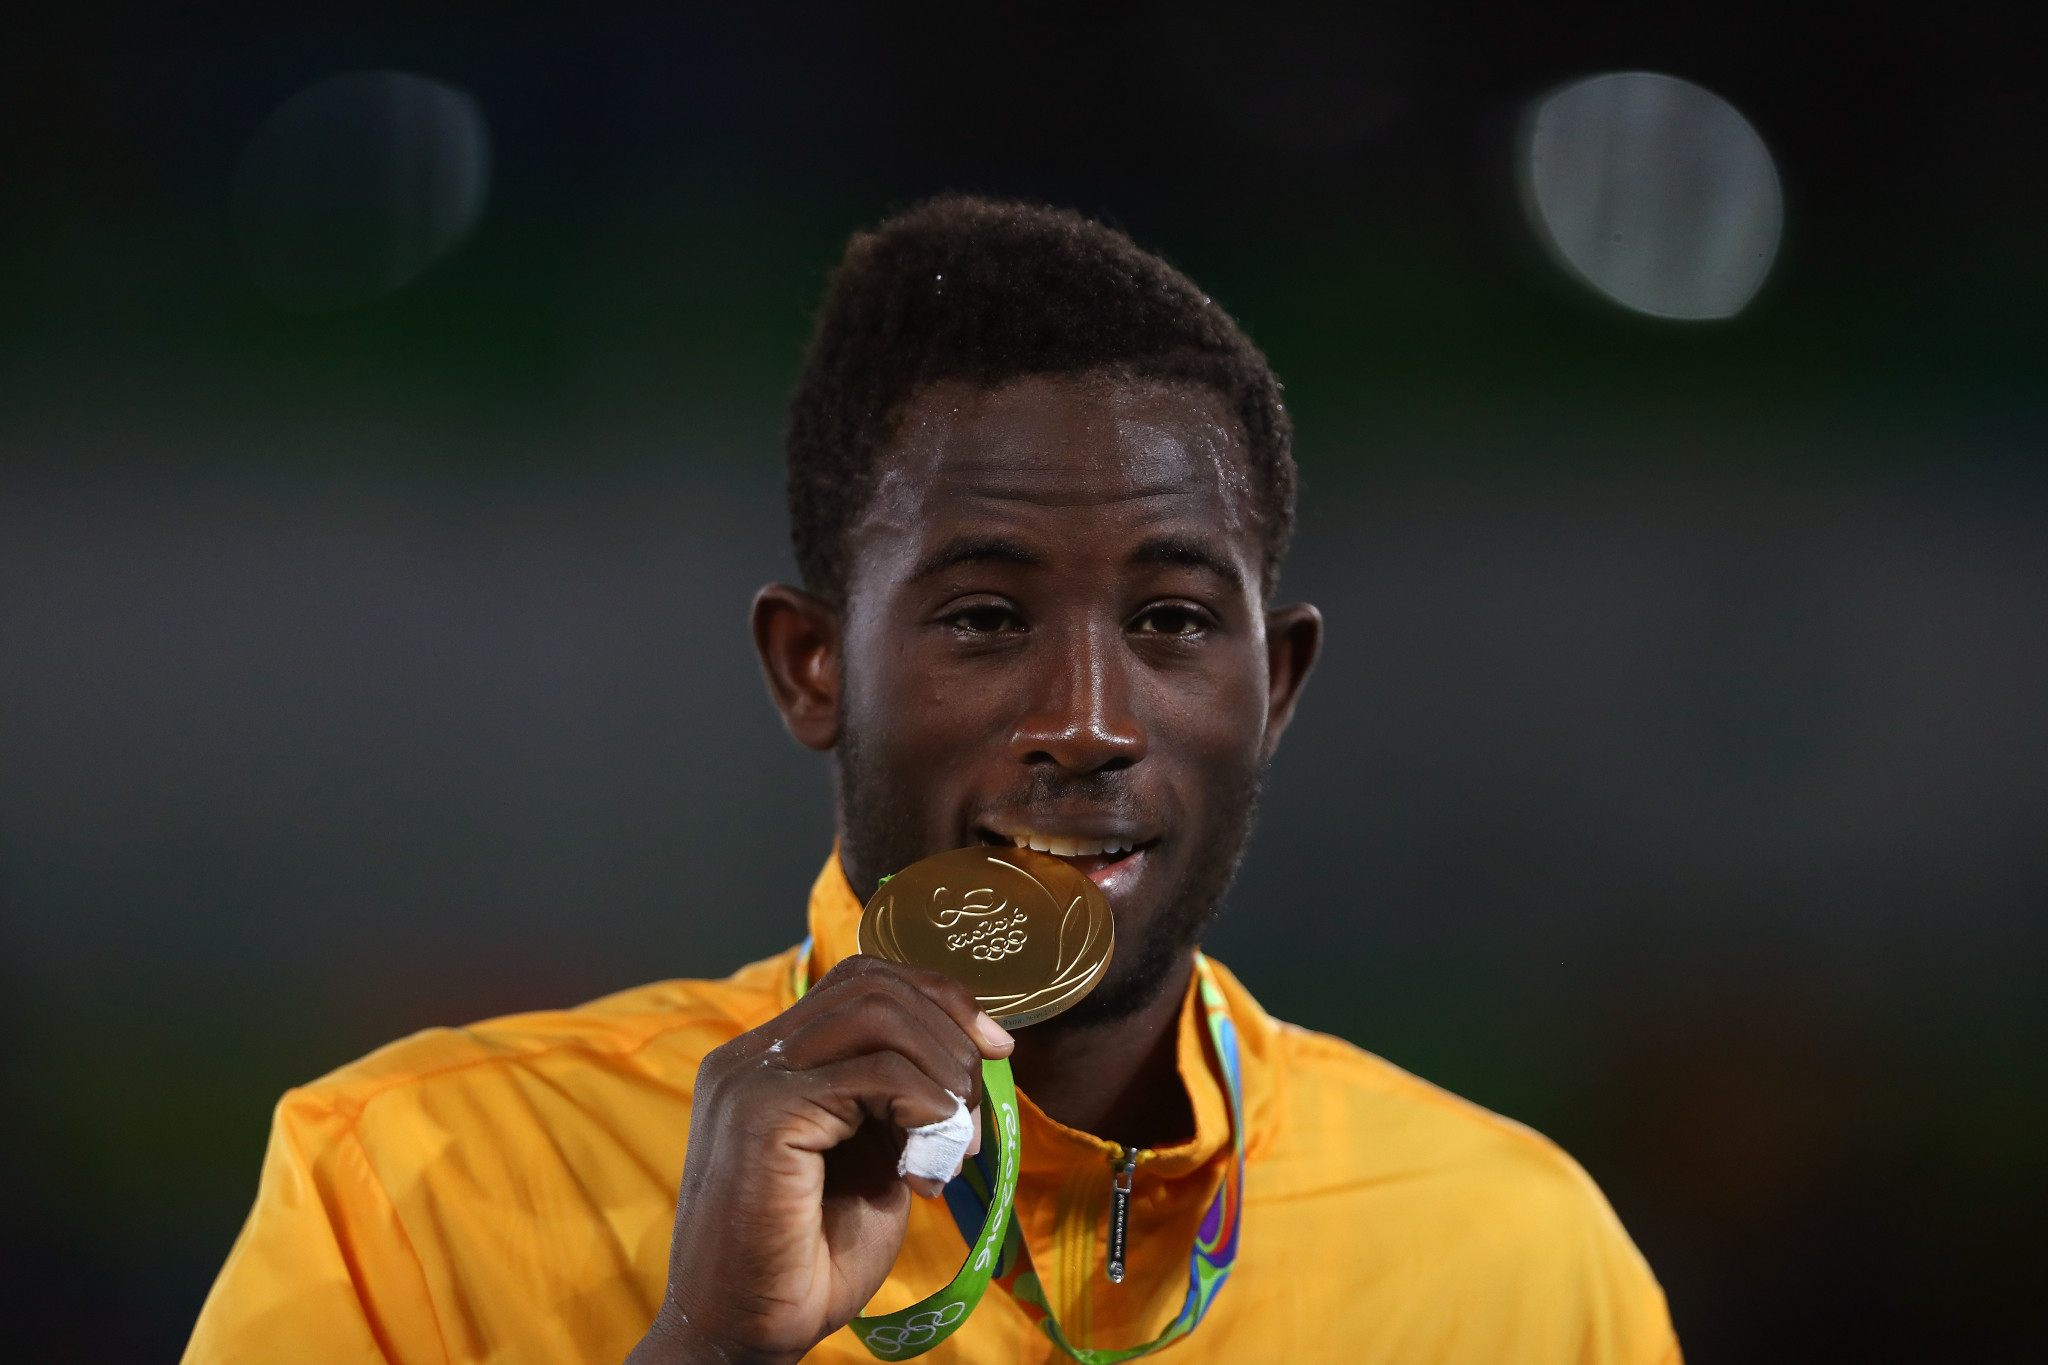 Olympic taekwondo qualifiers from Ivory Coast boosted with cash grant